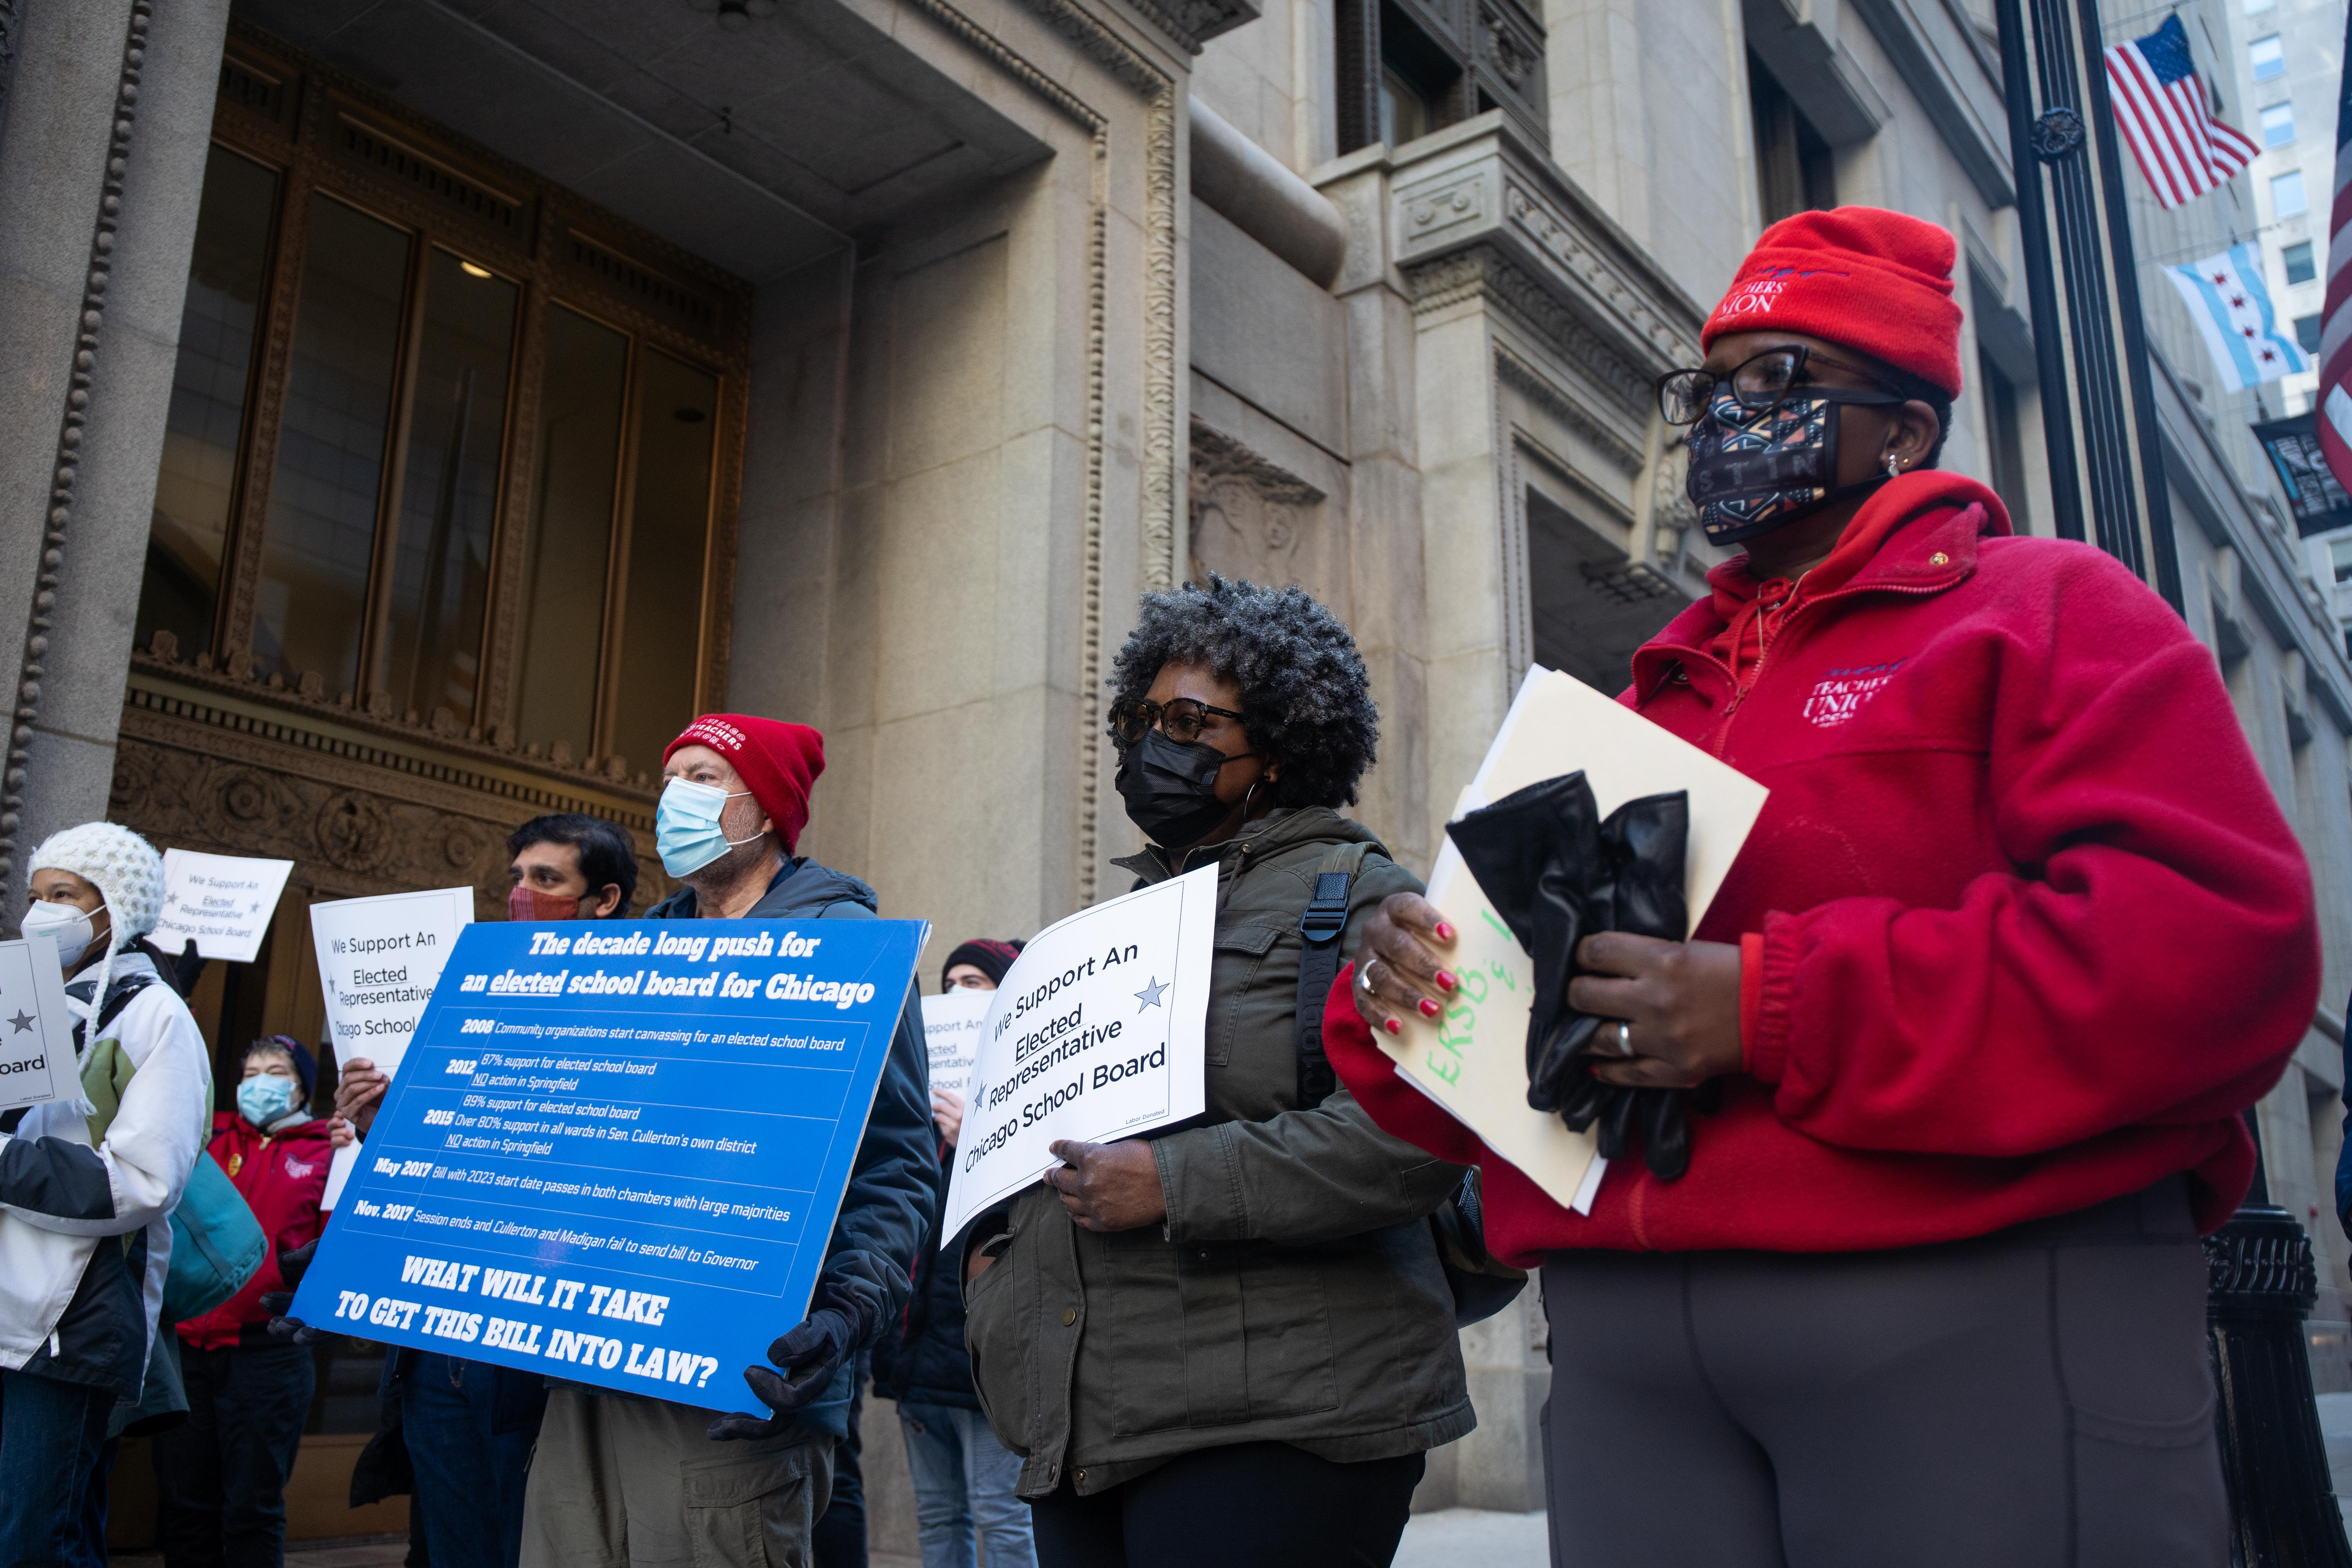 Members of the Grassroots Education Movement, which is composed of parents of Chicago Public Schools students and community leaders, outside City Hall in the Loop, Wednesday morning, March 3, 2021.